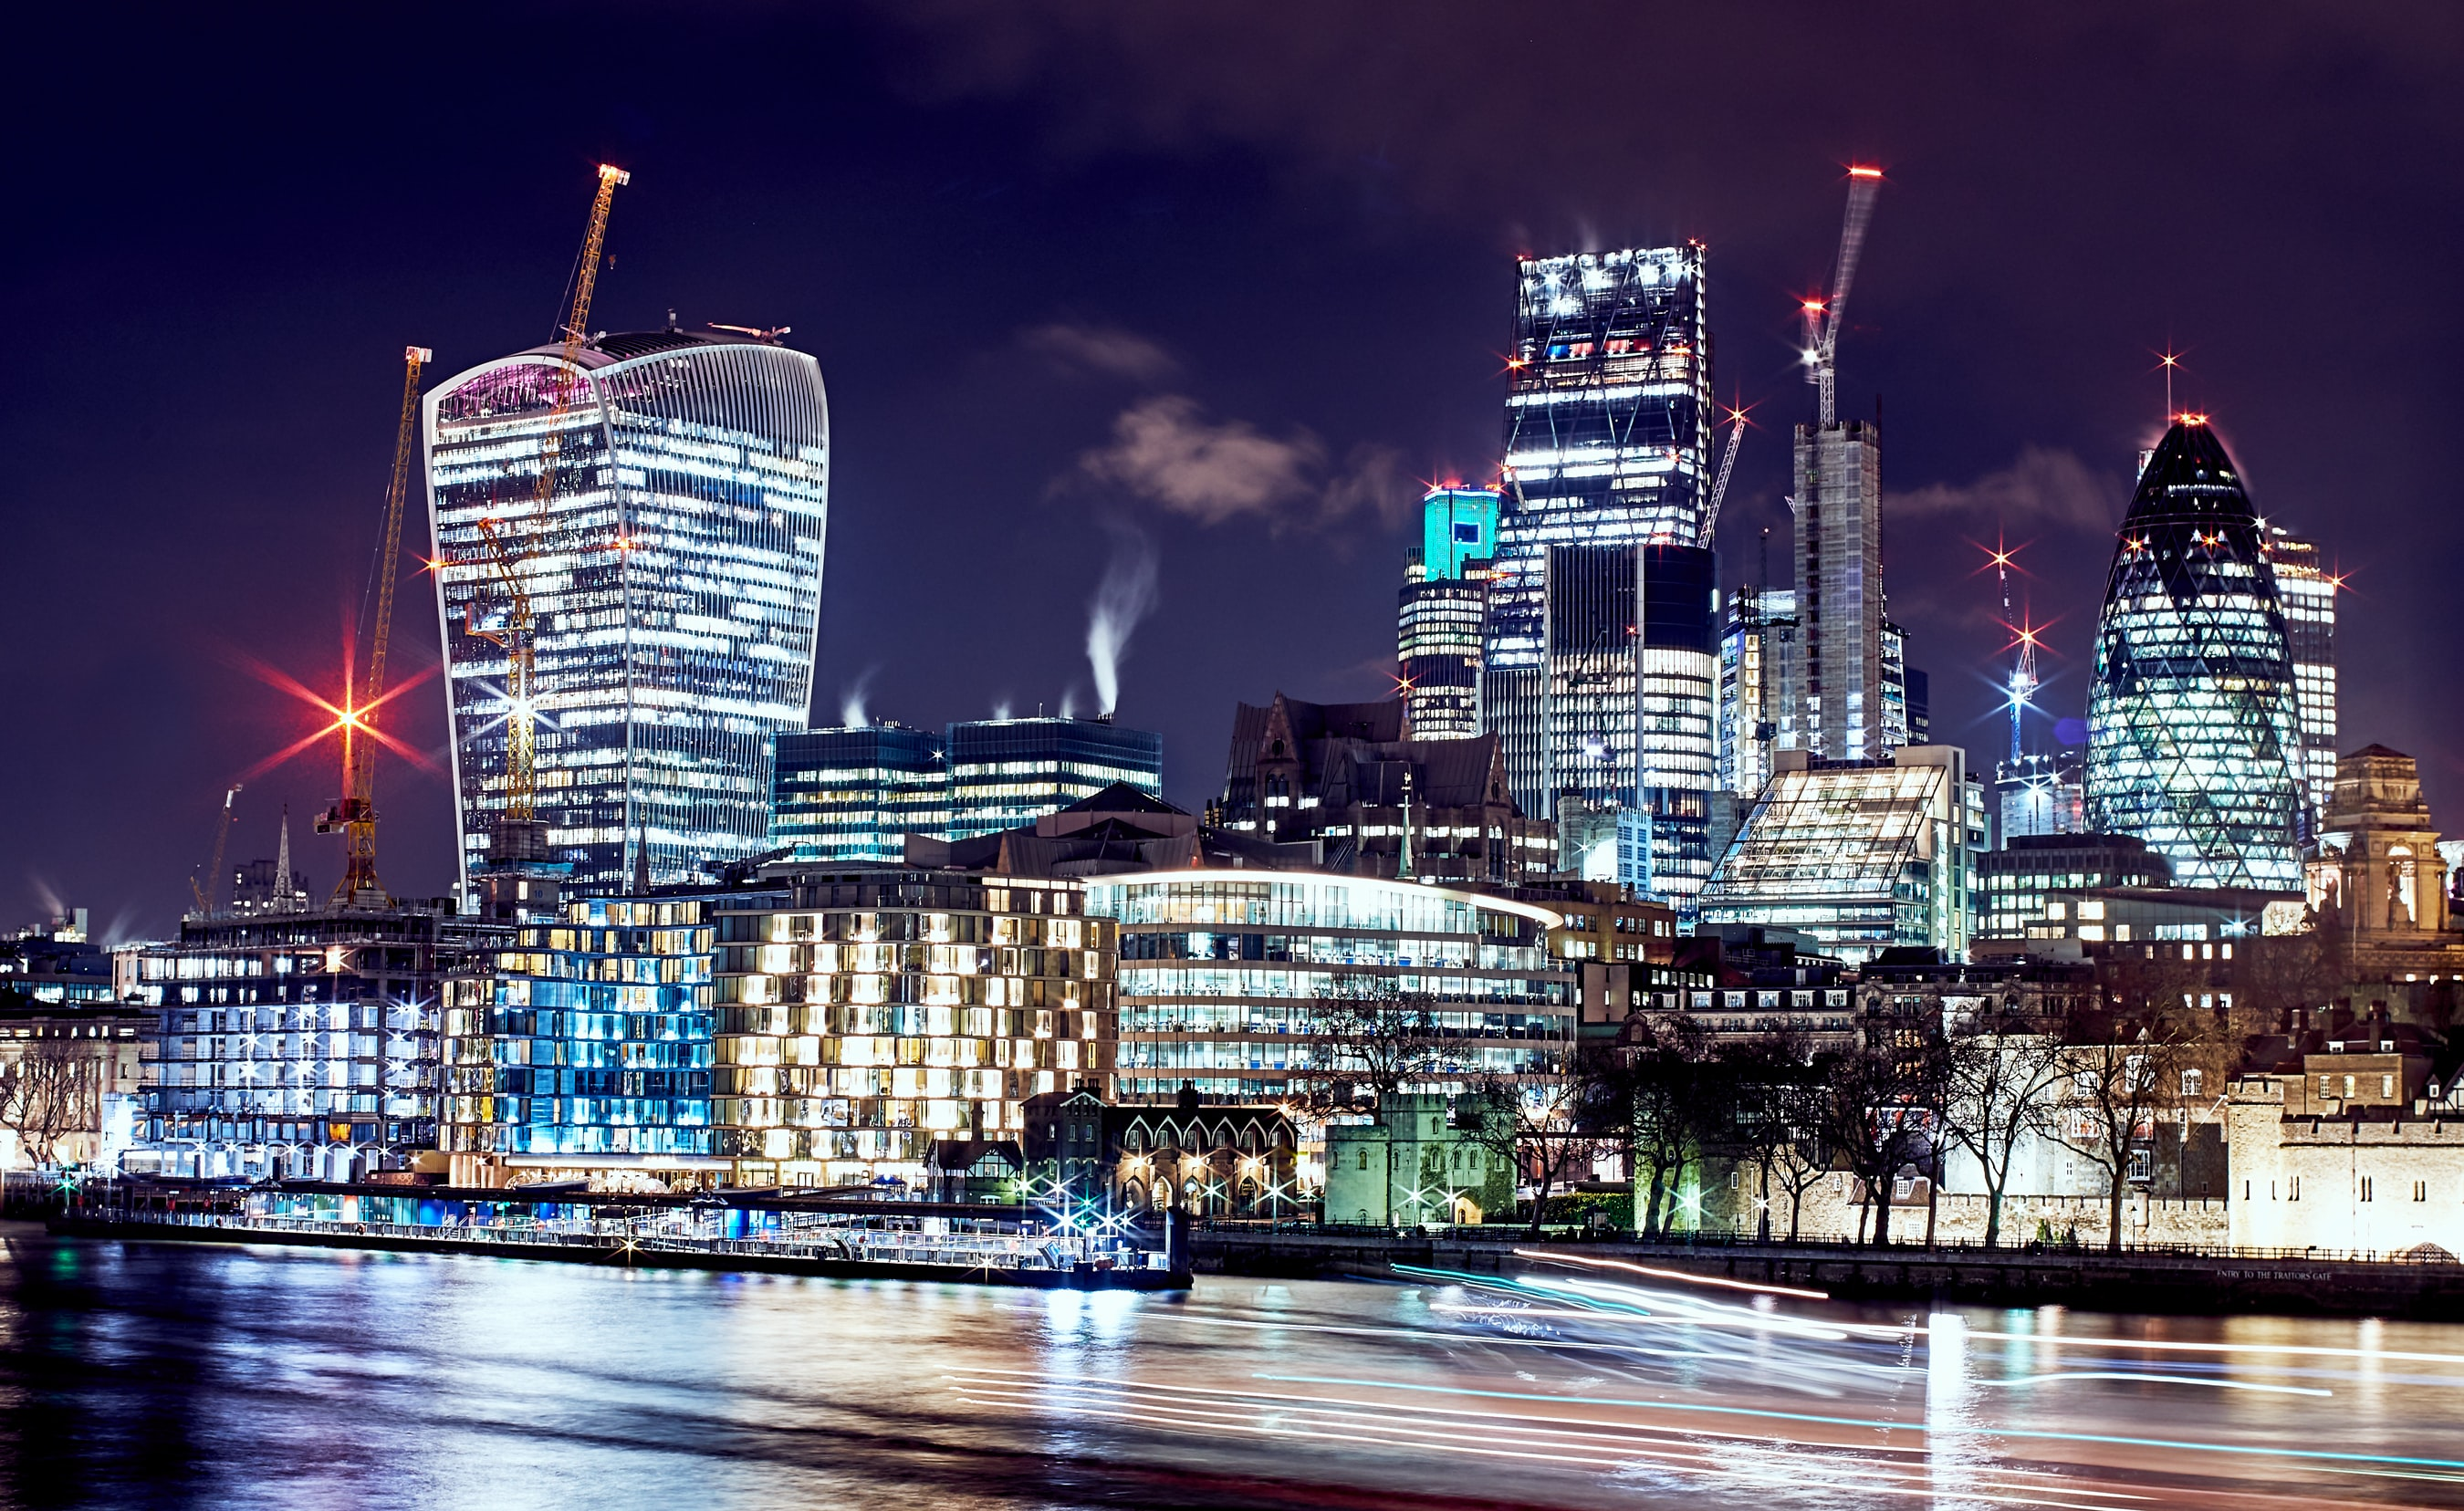 A cityscape background featuring well lit buildings and skyscrapers at night in London